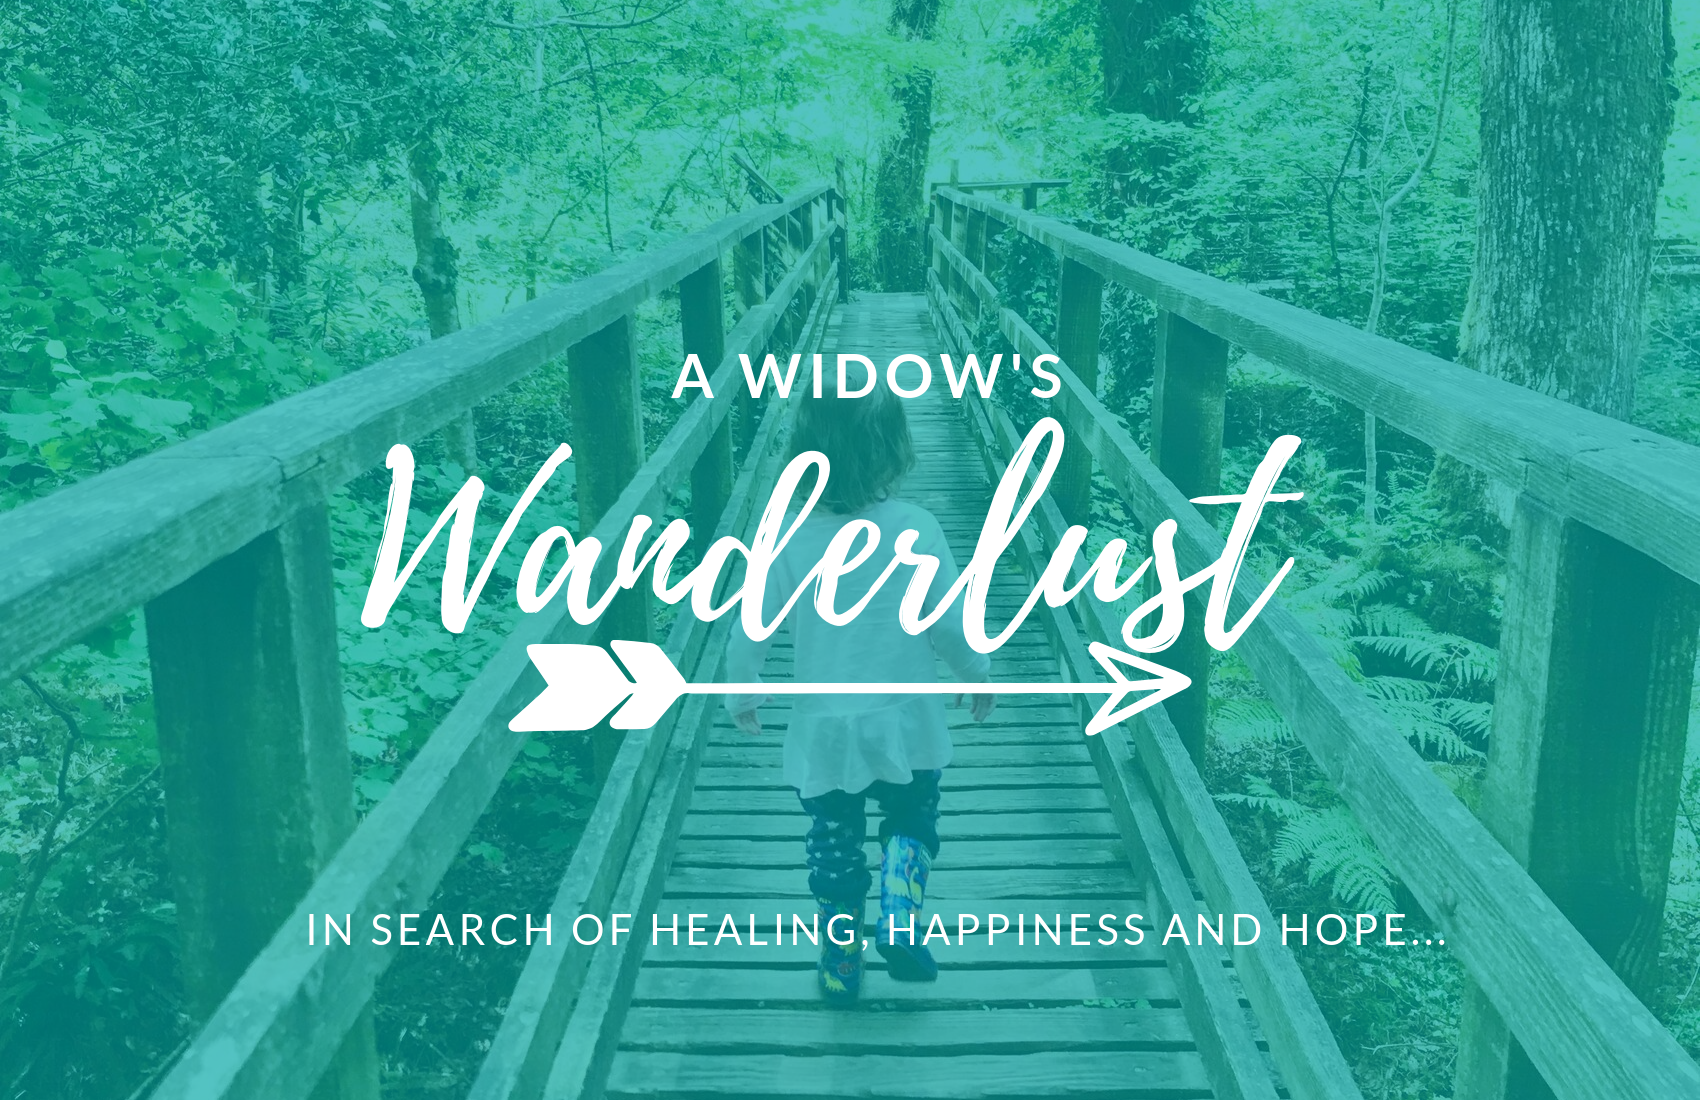 A Widow's Wanderlust